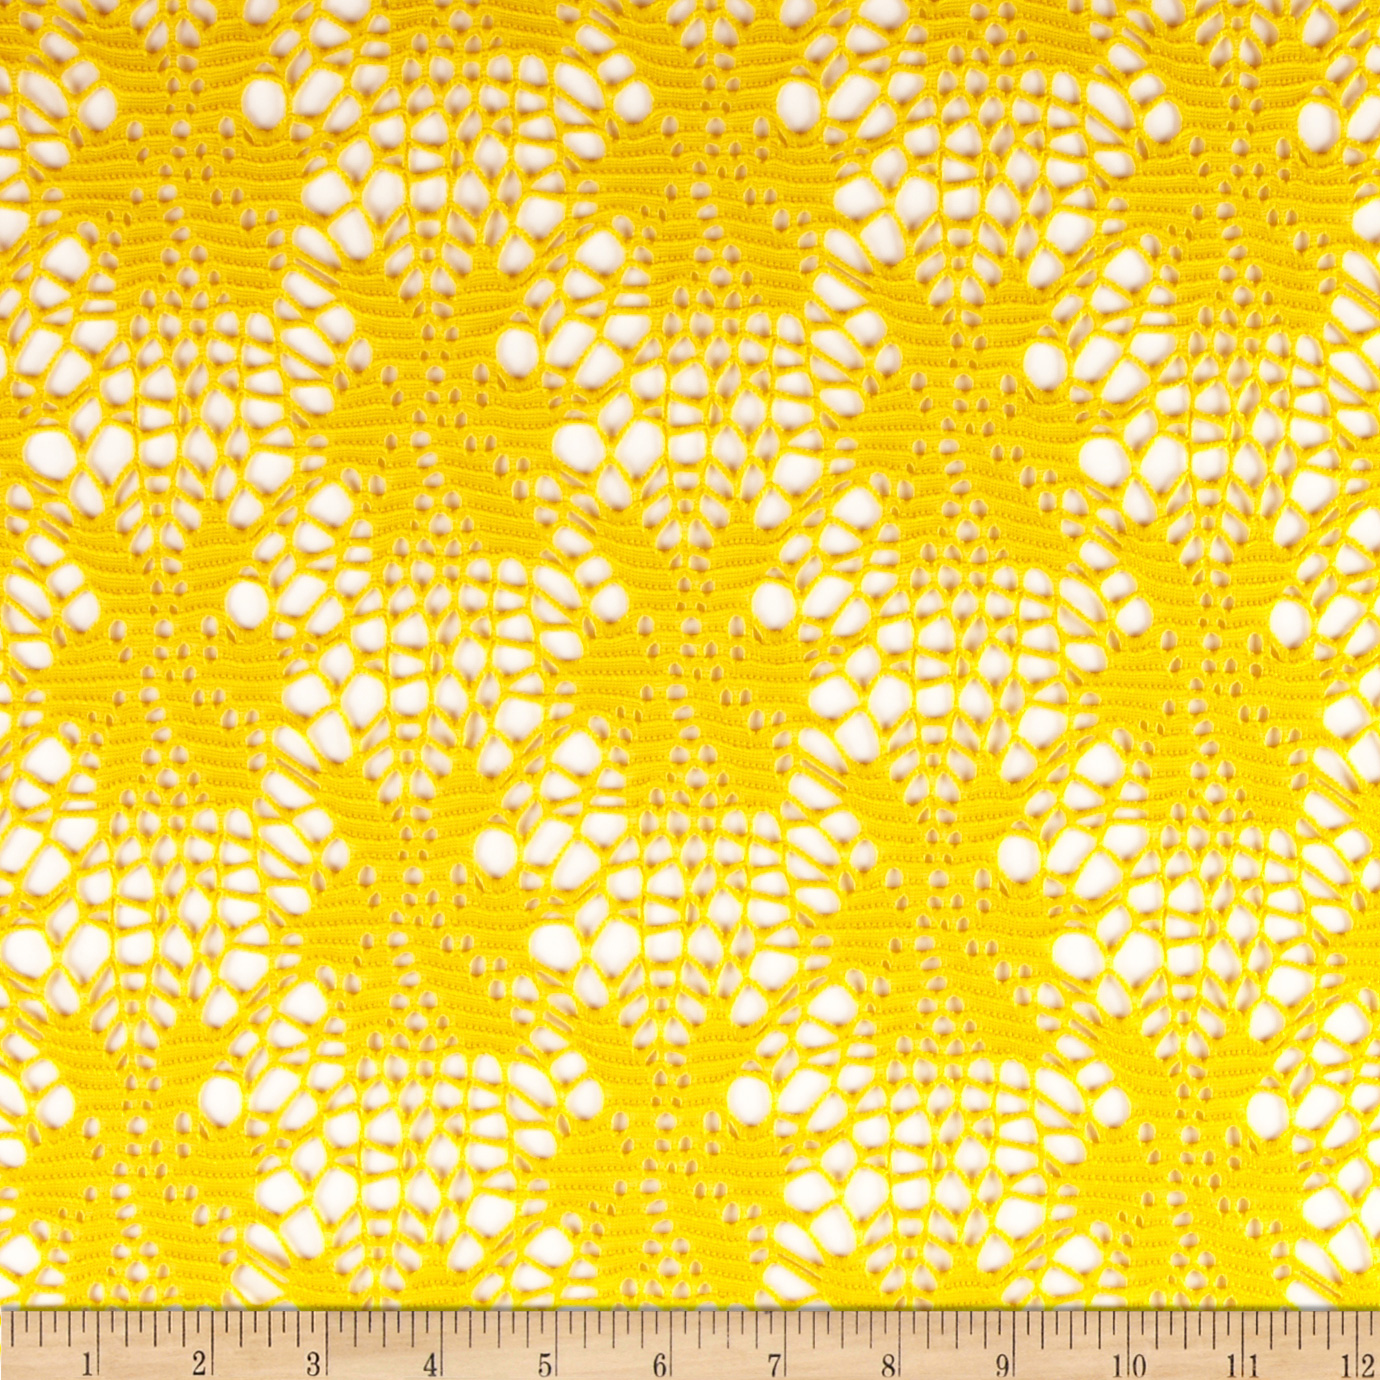 Floral Crochet Lace Yellow Fabric